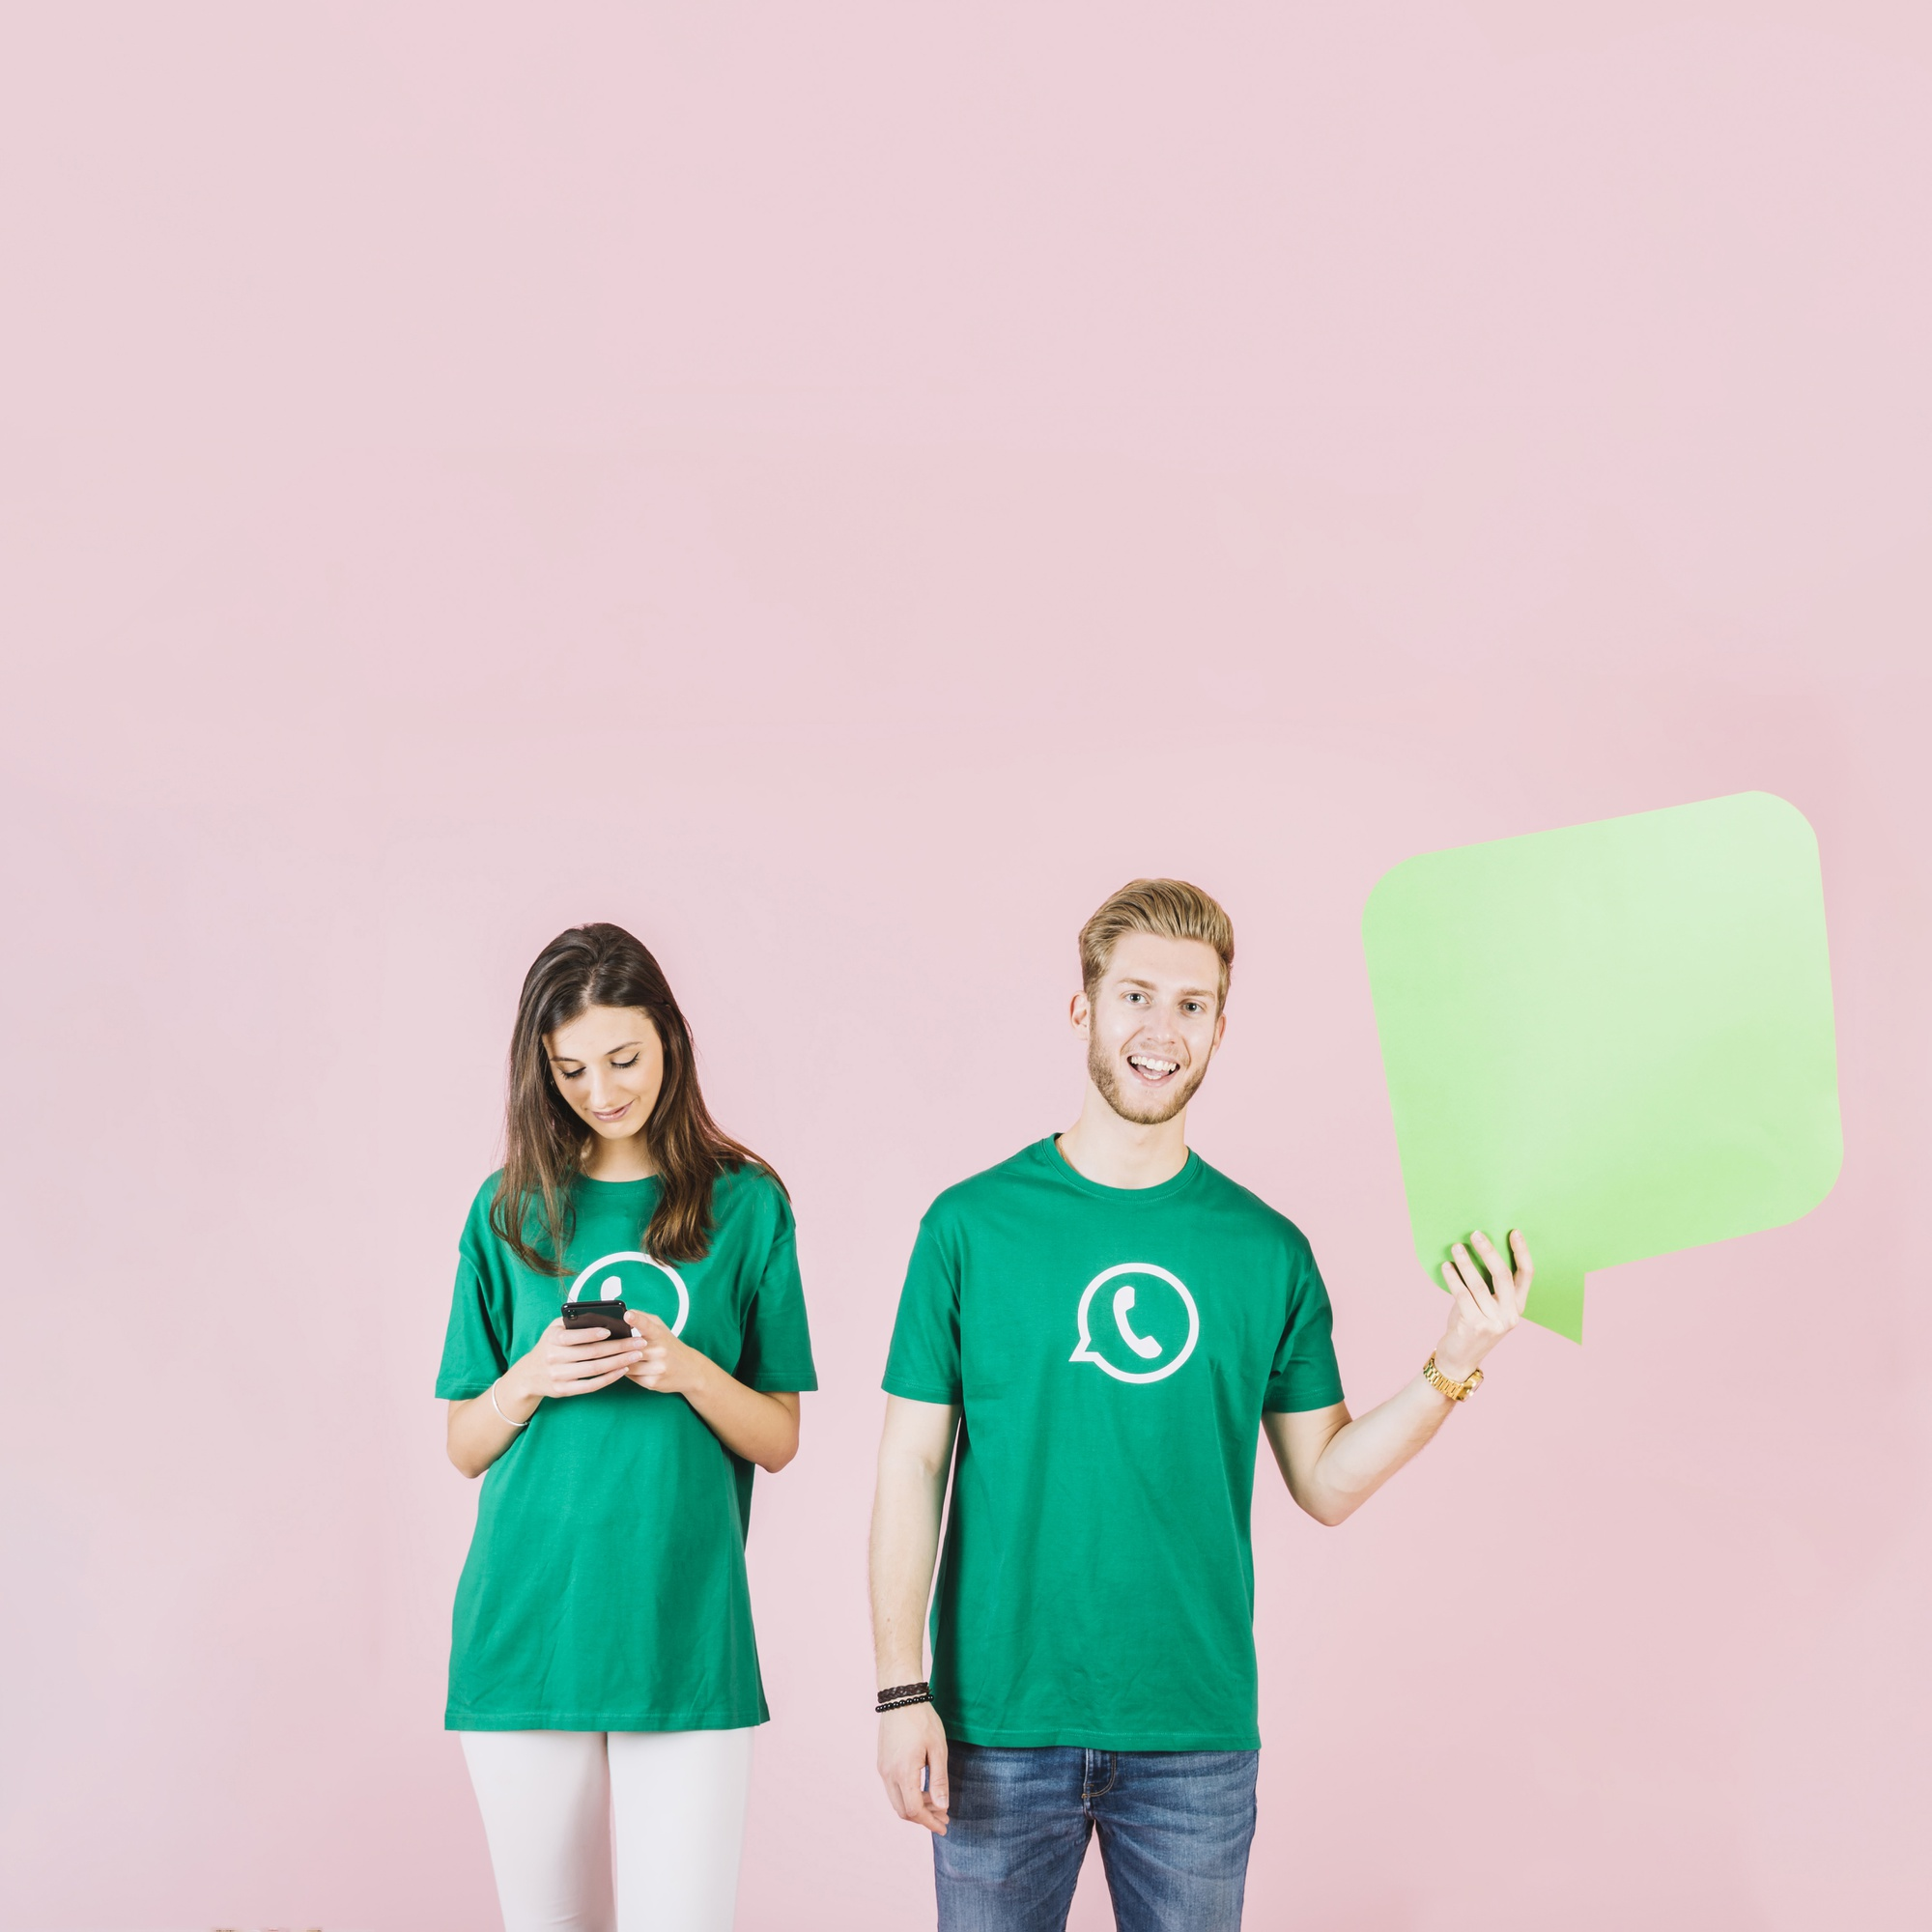 Man and woman holding empty speech bubble and smartphone